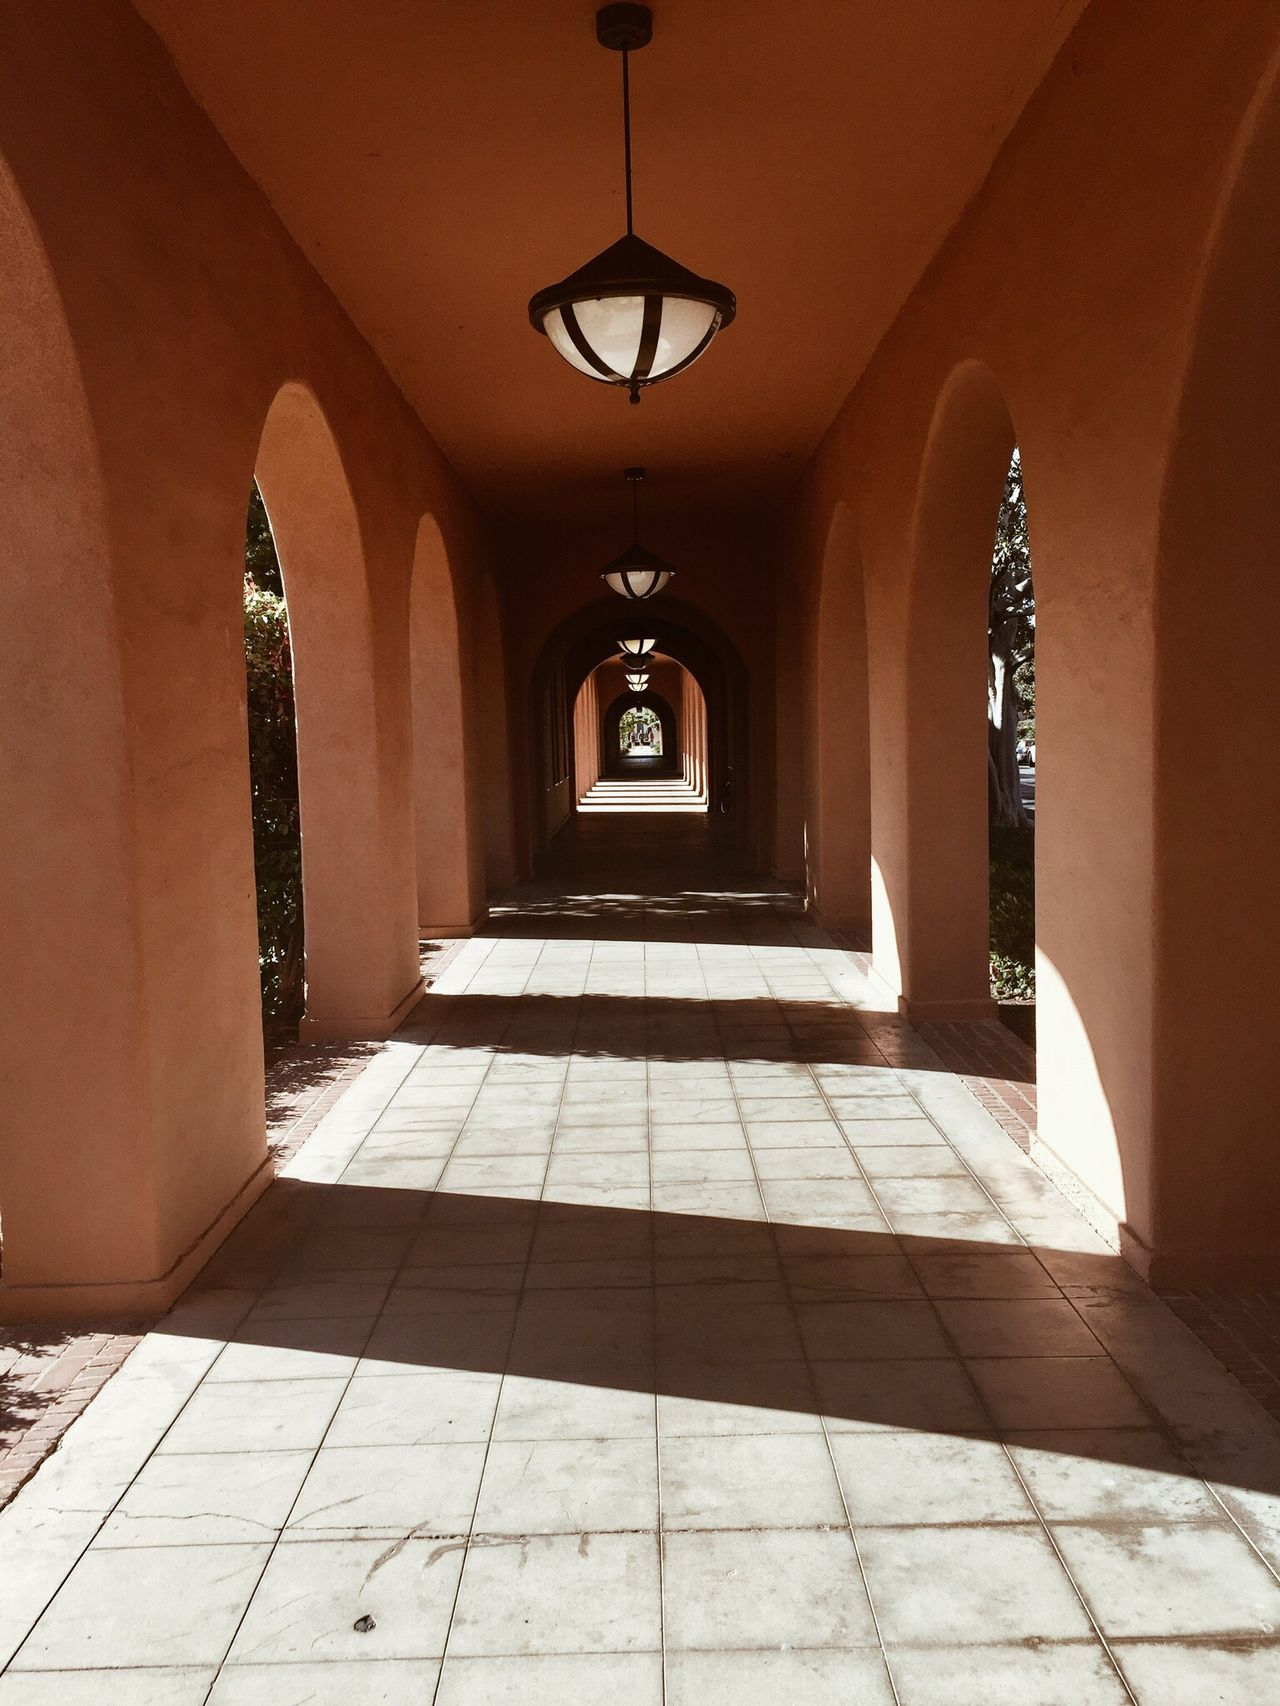 Liberty Station San Diego, California Arch Indoors  The Way Forward Tiled Floor Illuminated Architecture Architectural Column Built Structure No People Hallway Passage Day